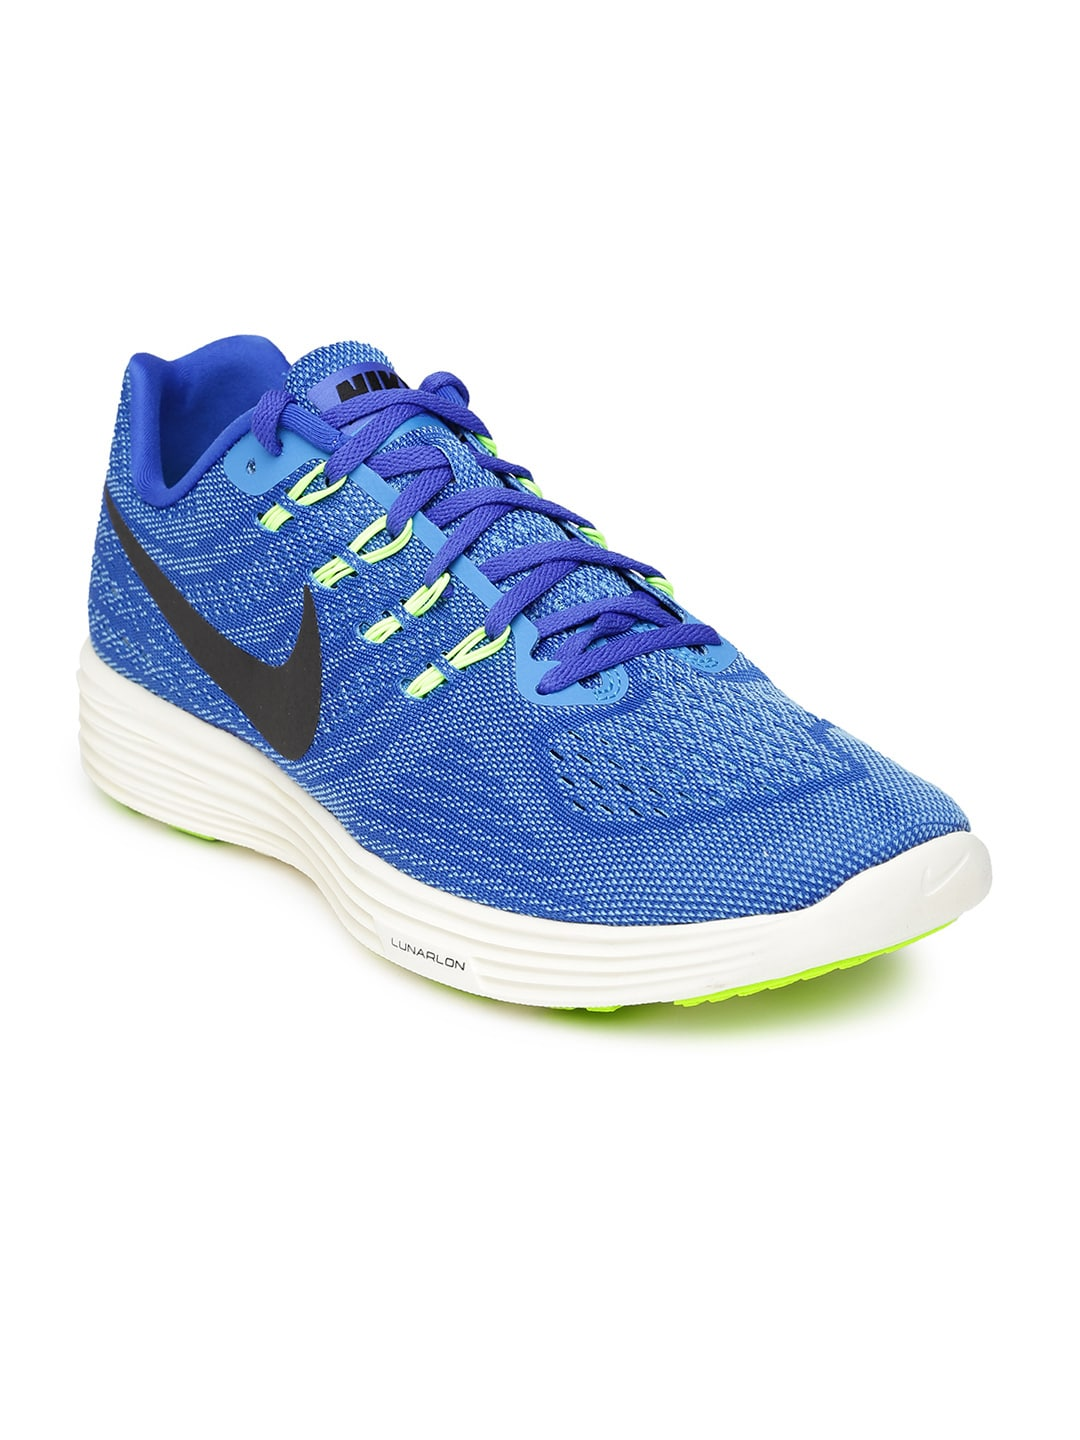 Nike 818097-401 Men Blue Lunar Tempo 2 Running Shoes - Best Price in ... e240e72cbfd9